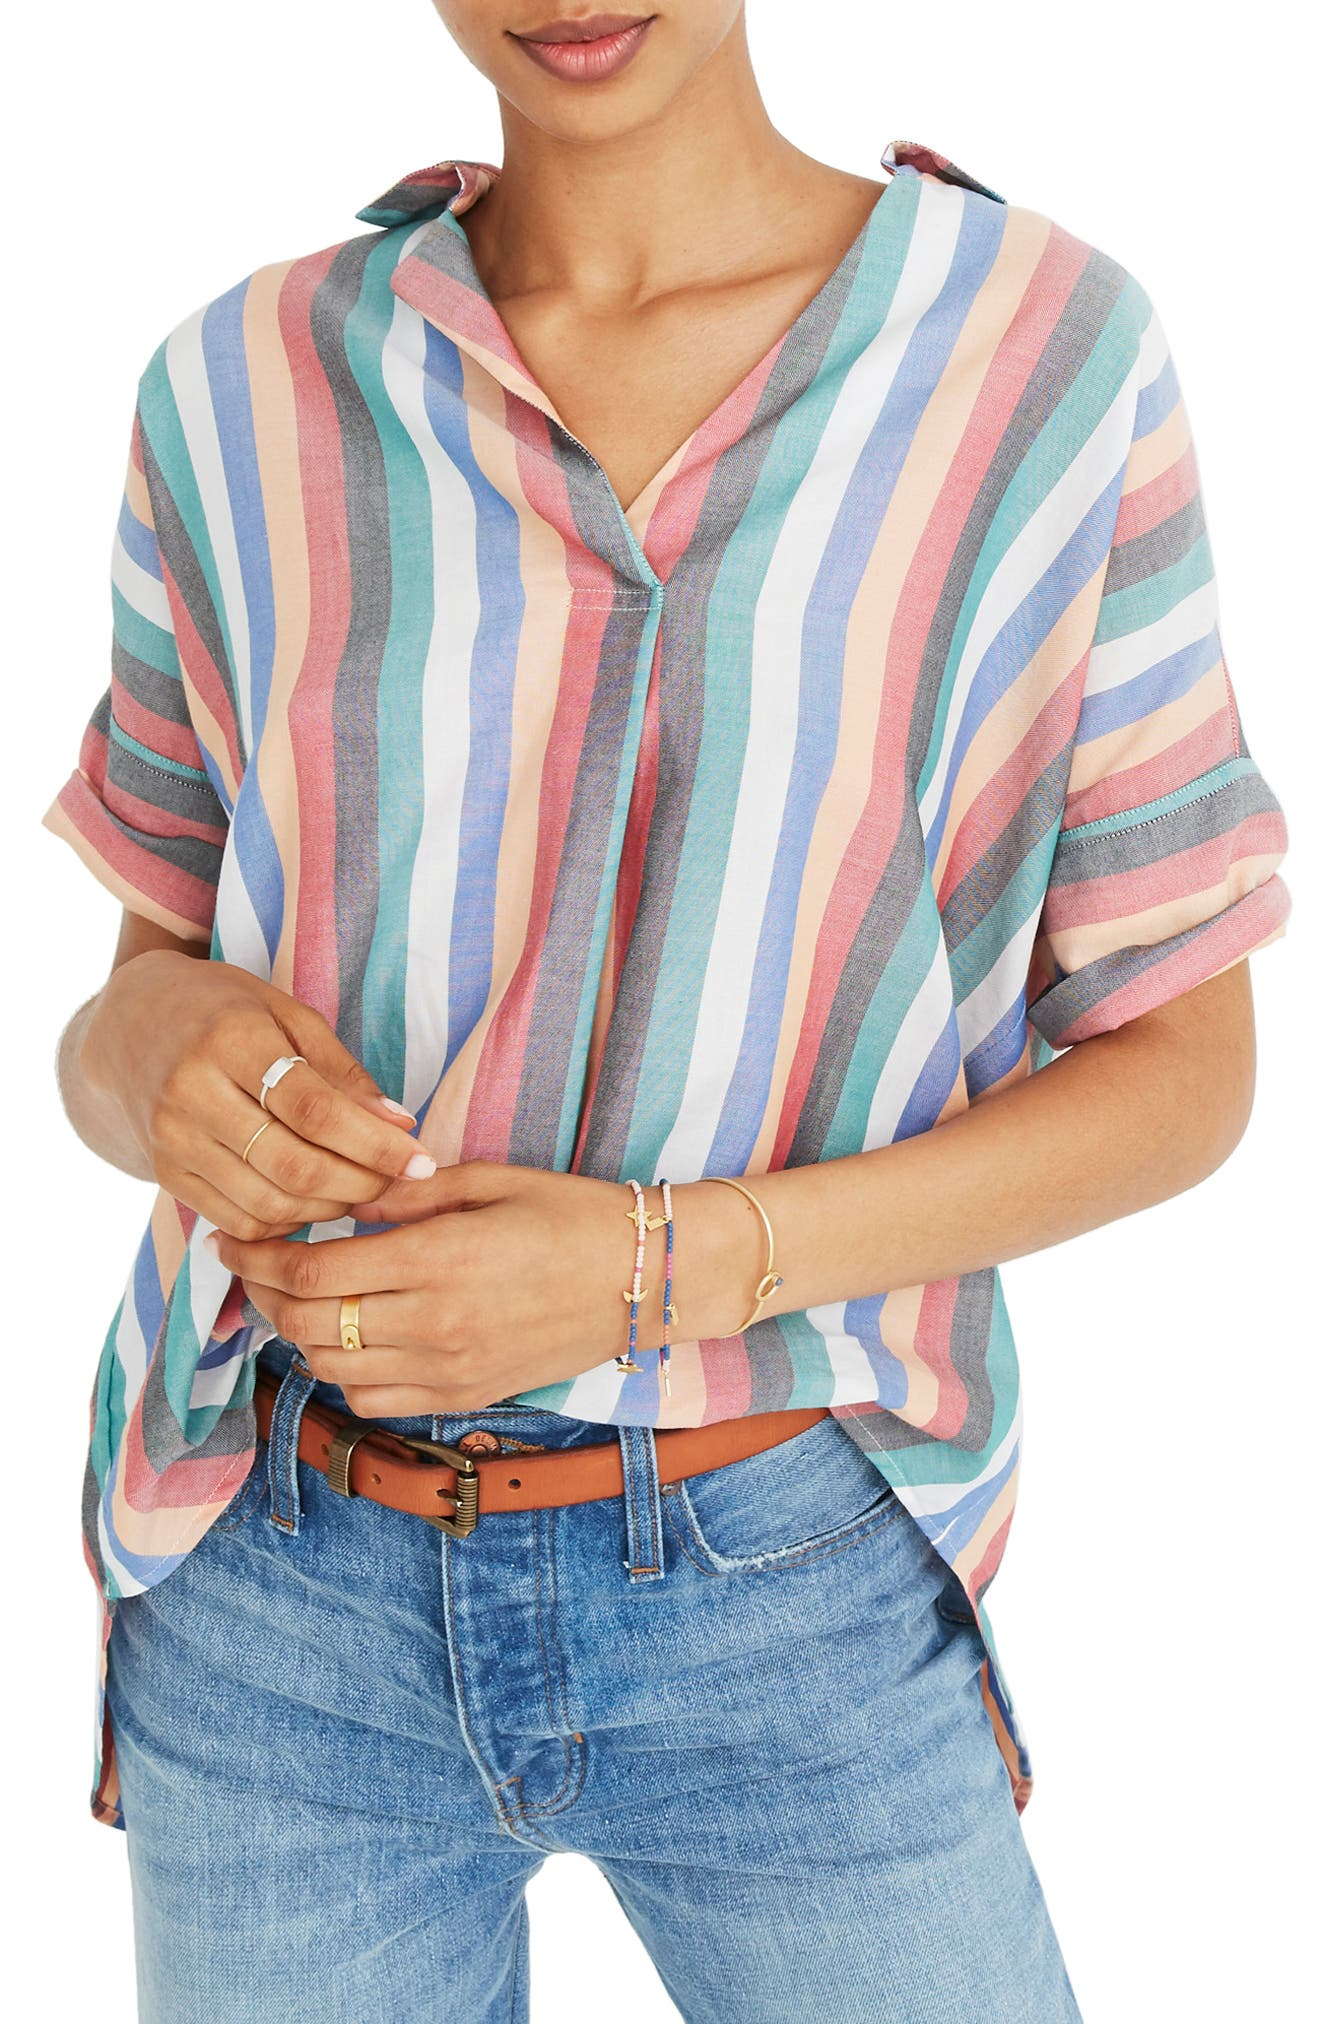 Courier Button Back Shirt,                             Main thumbnail 1, color,                             MULTI STRIPE